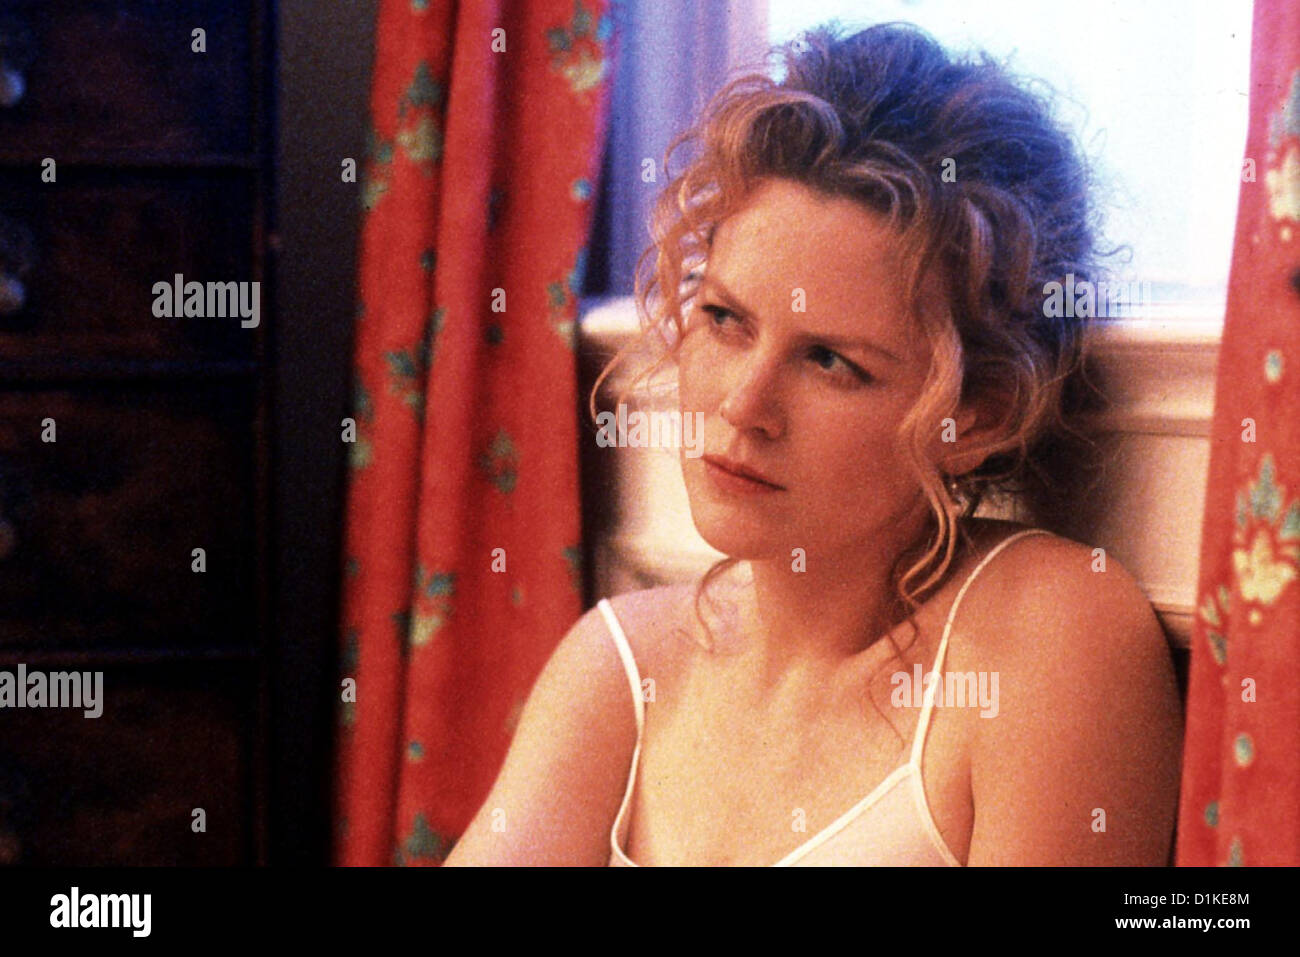 Eyes Wide Shut   Eyes Wide Shut   Alice Harford (Nicole Kidman) *** Local Caption *** 1999  -- - Stock Image